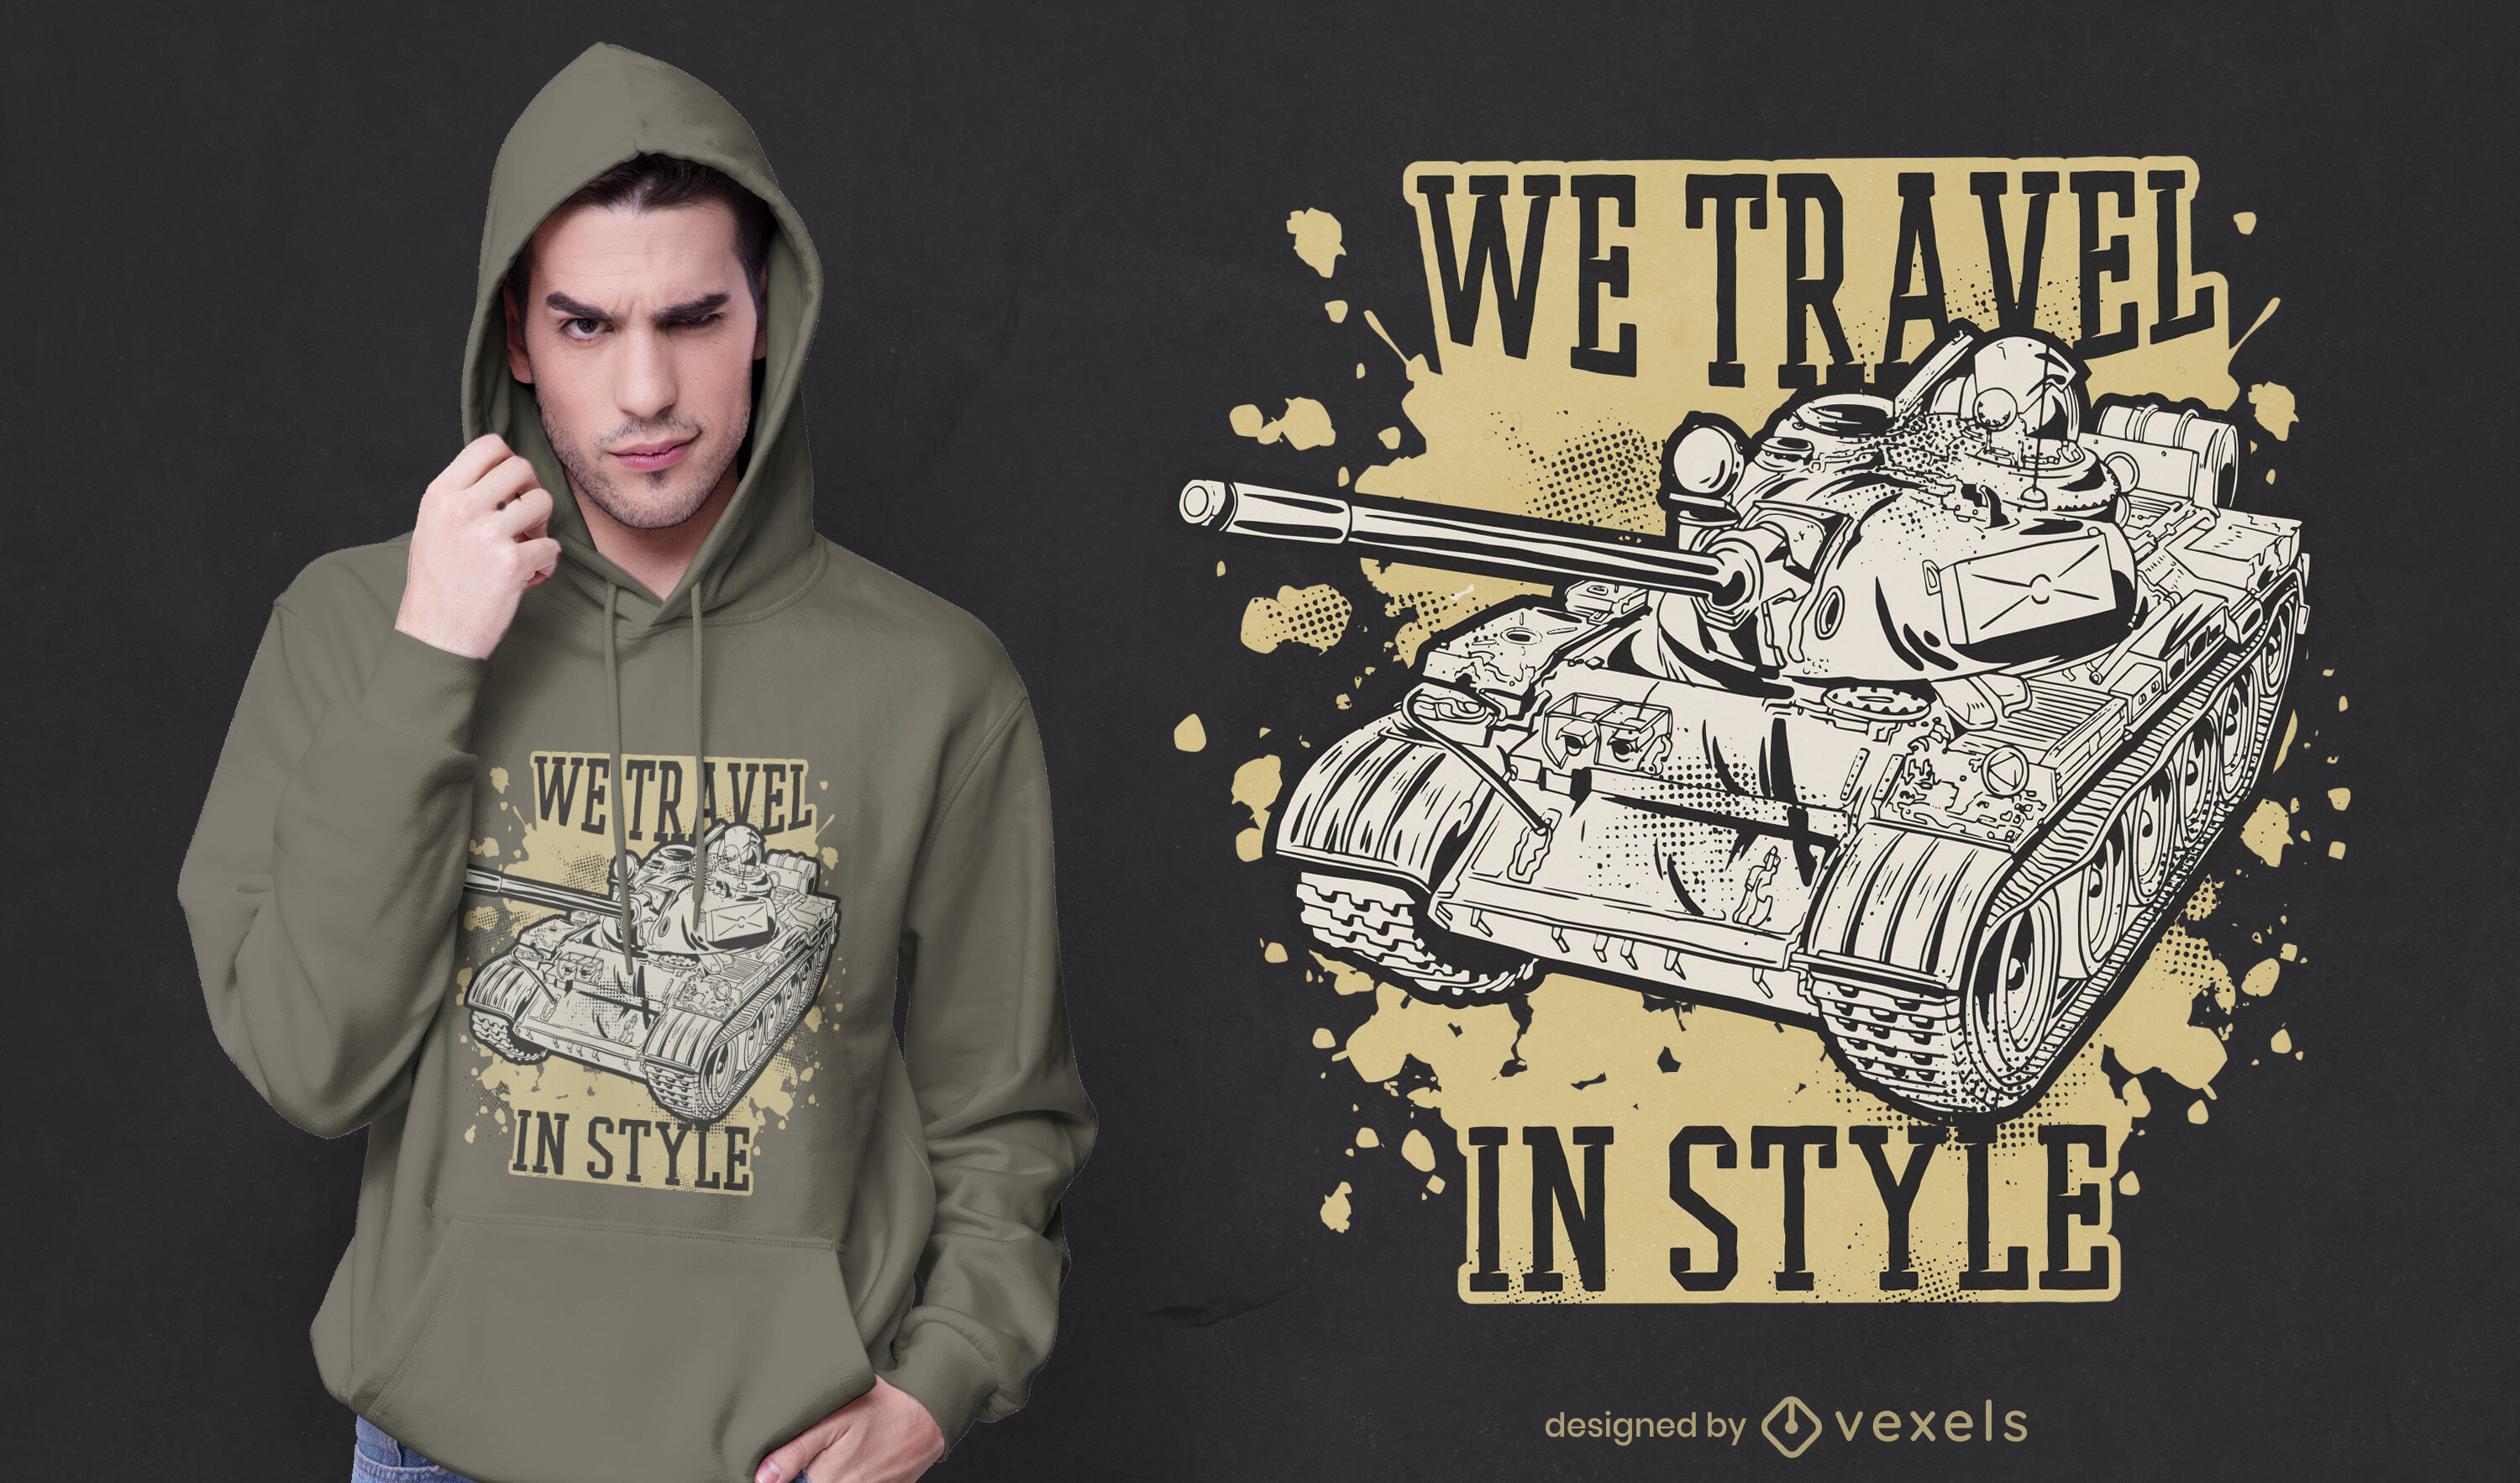 Travel in style t-shirt design